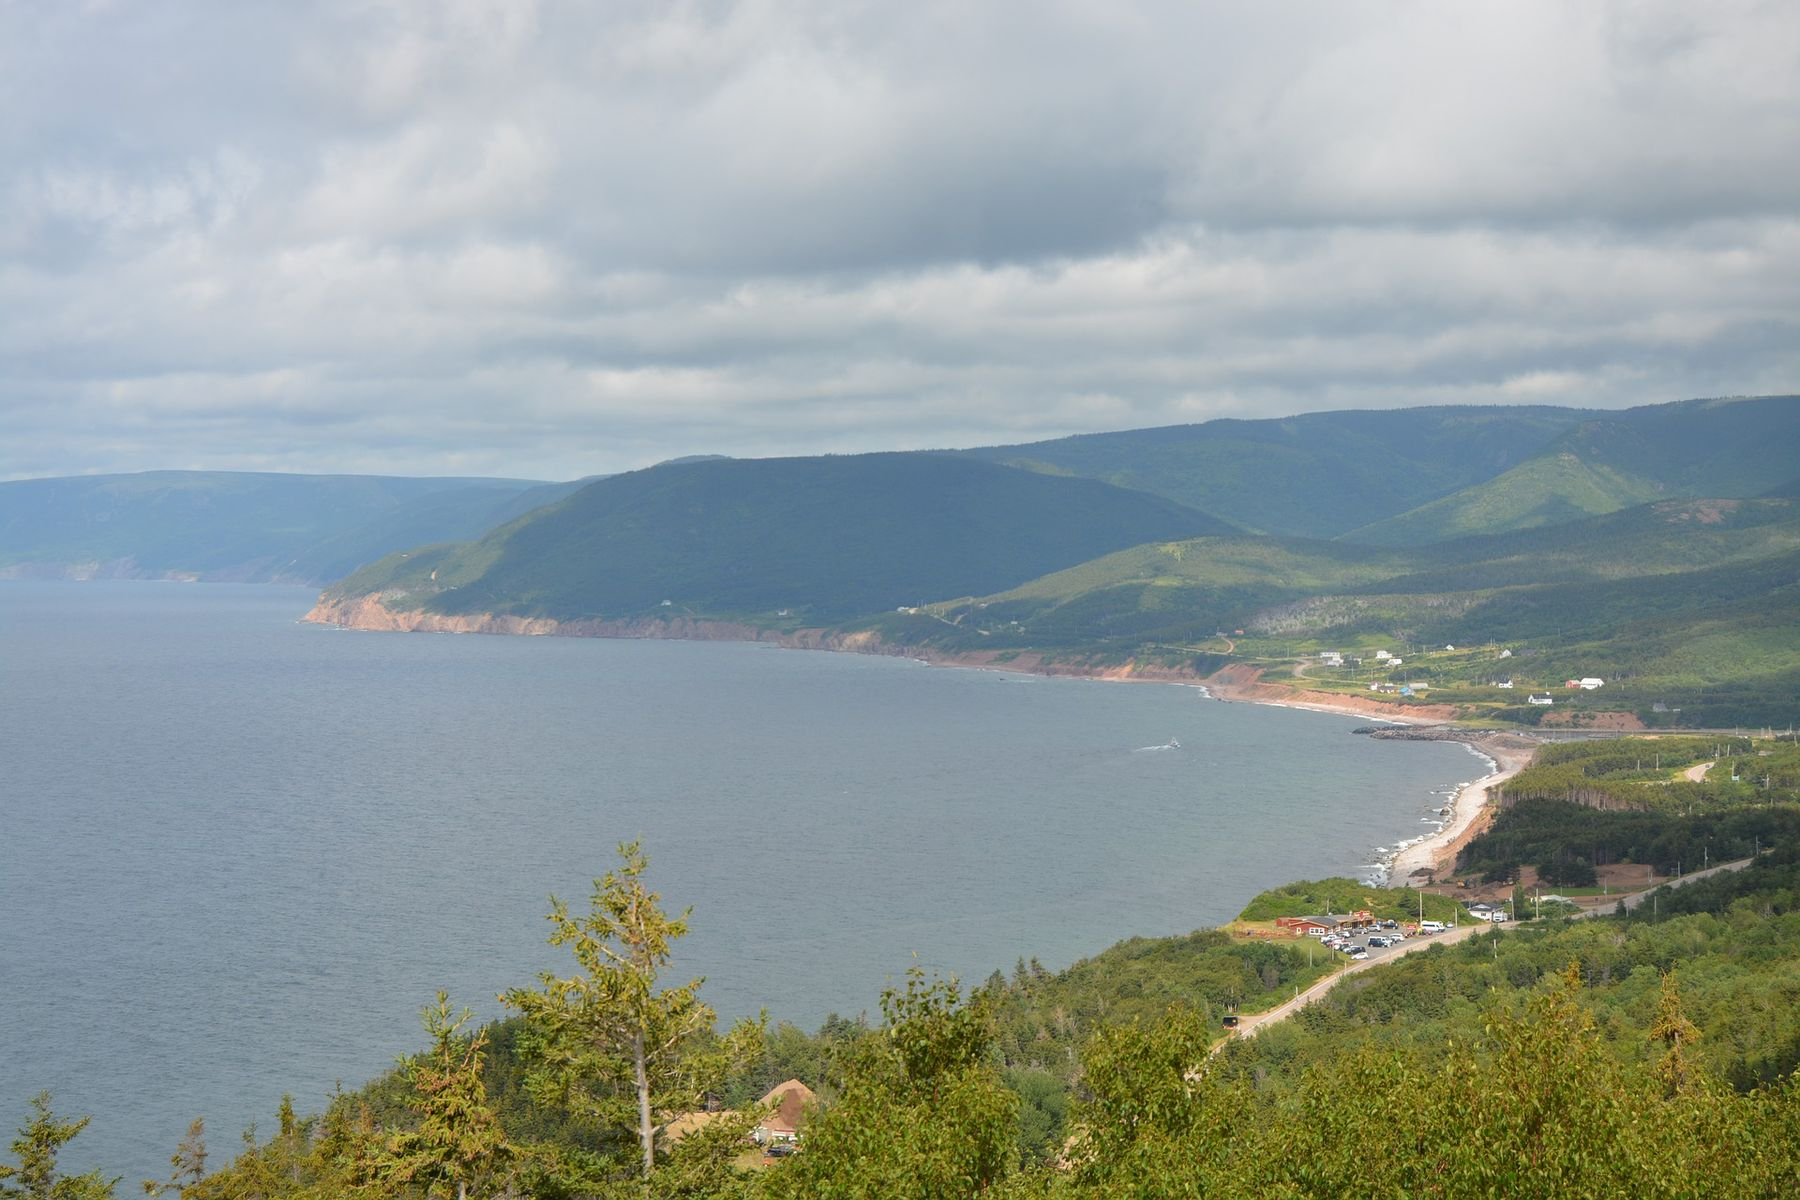 scene at the Cabot Trail in Nova Scotia, a great place for a bike trip